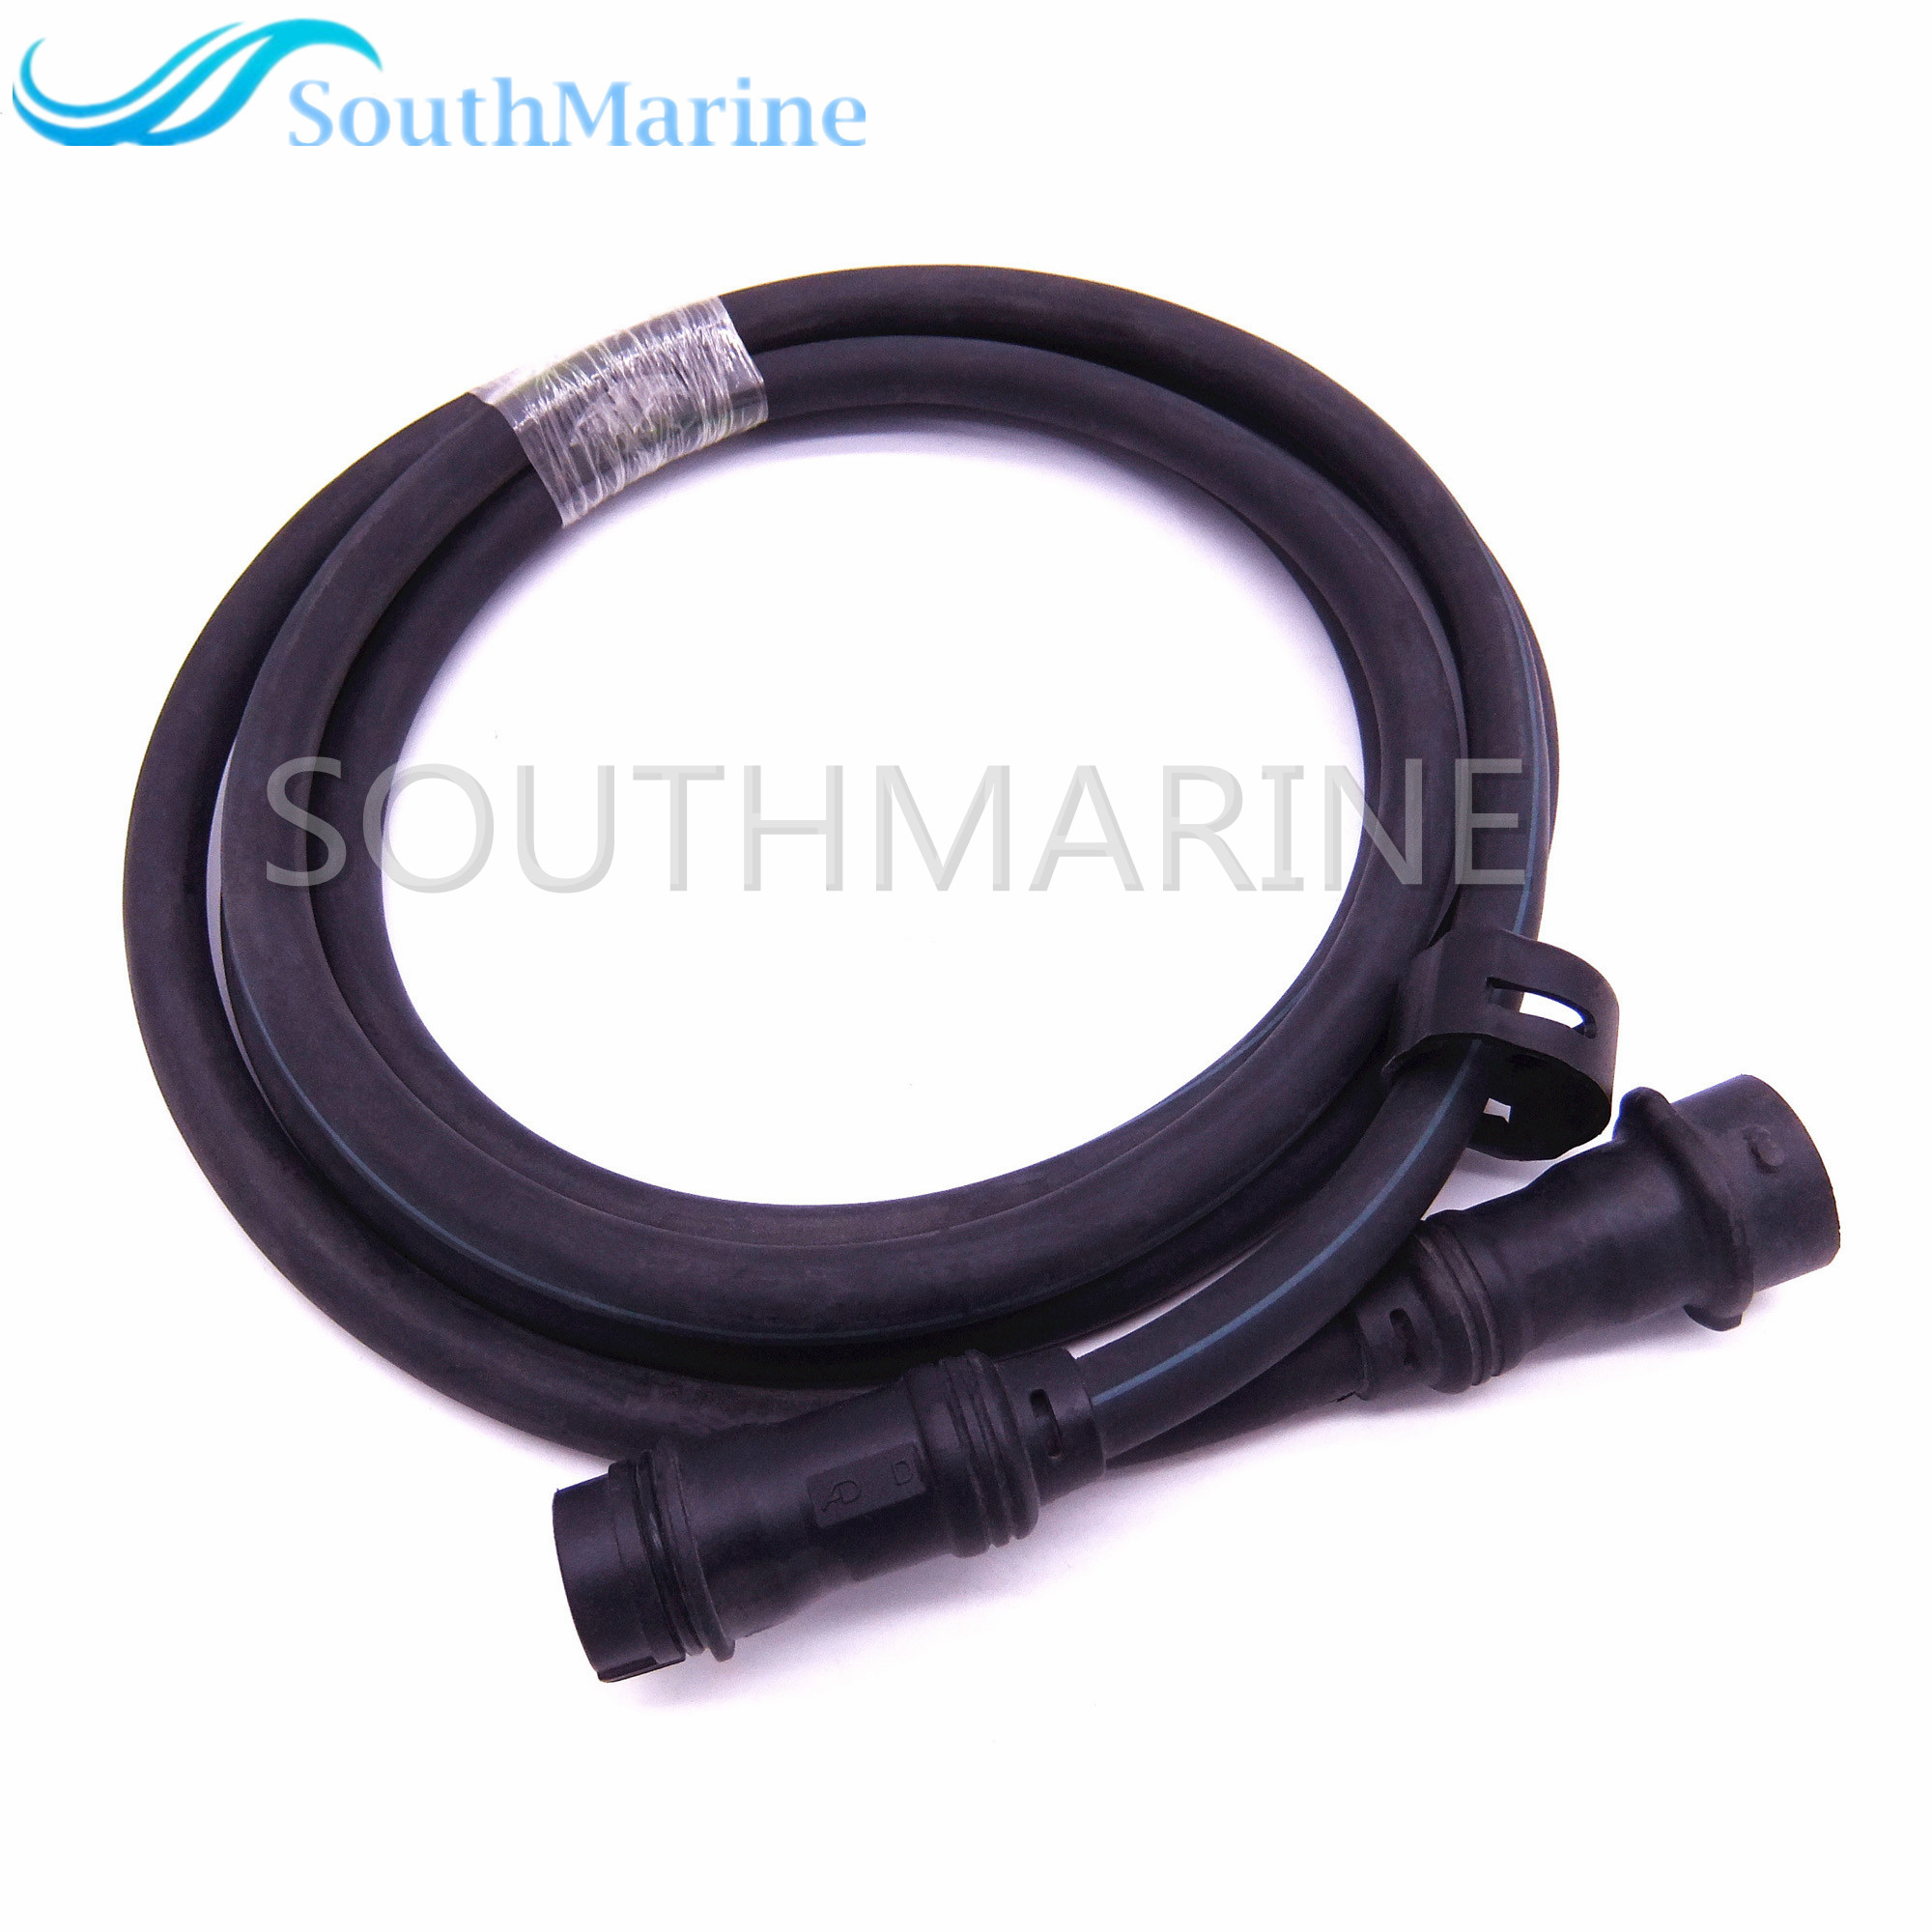 US $43.1 11% OFF|6.6ft 688 8258A 10 00 688 8258A 10 10 Pin Main Wire on